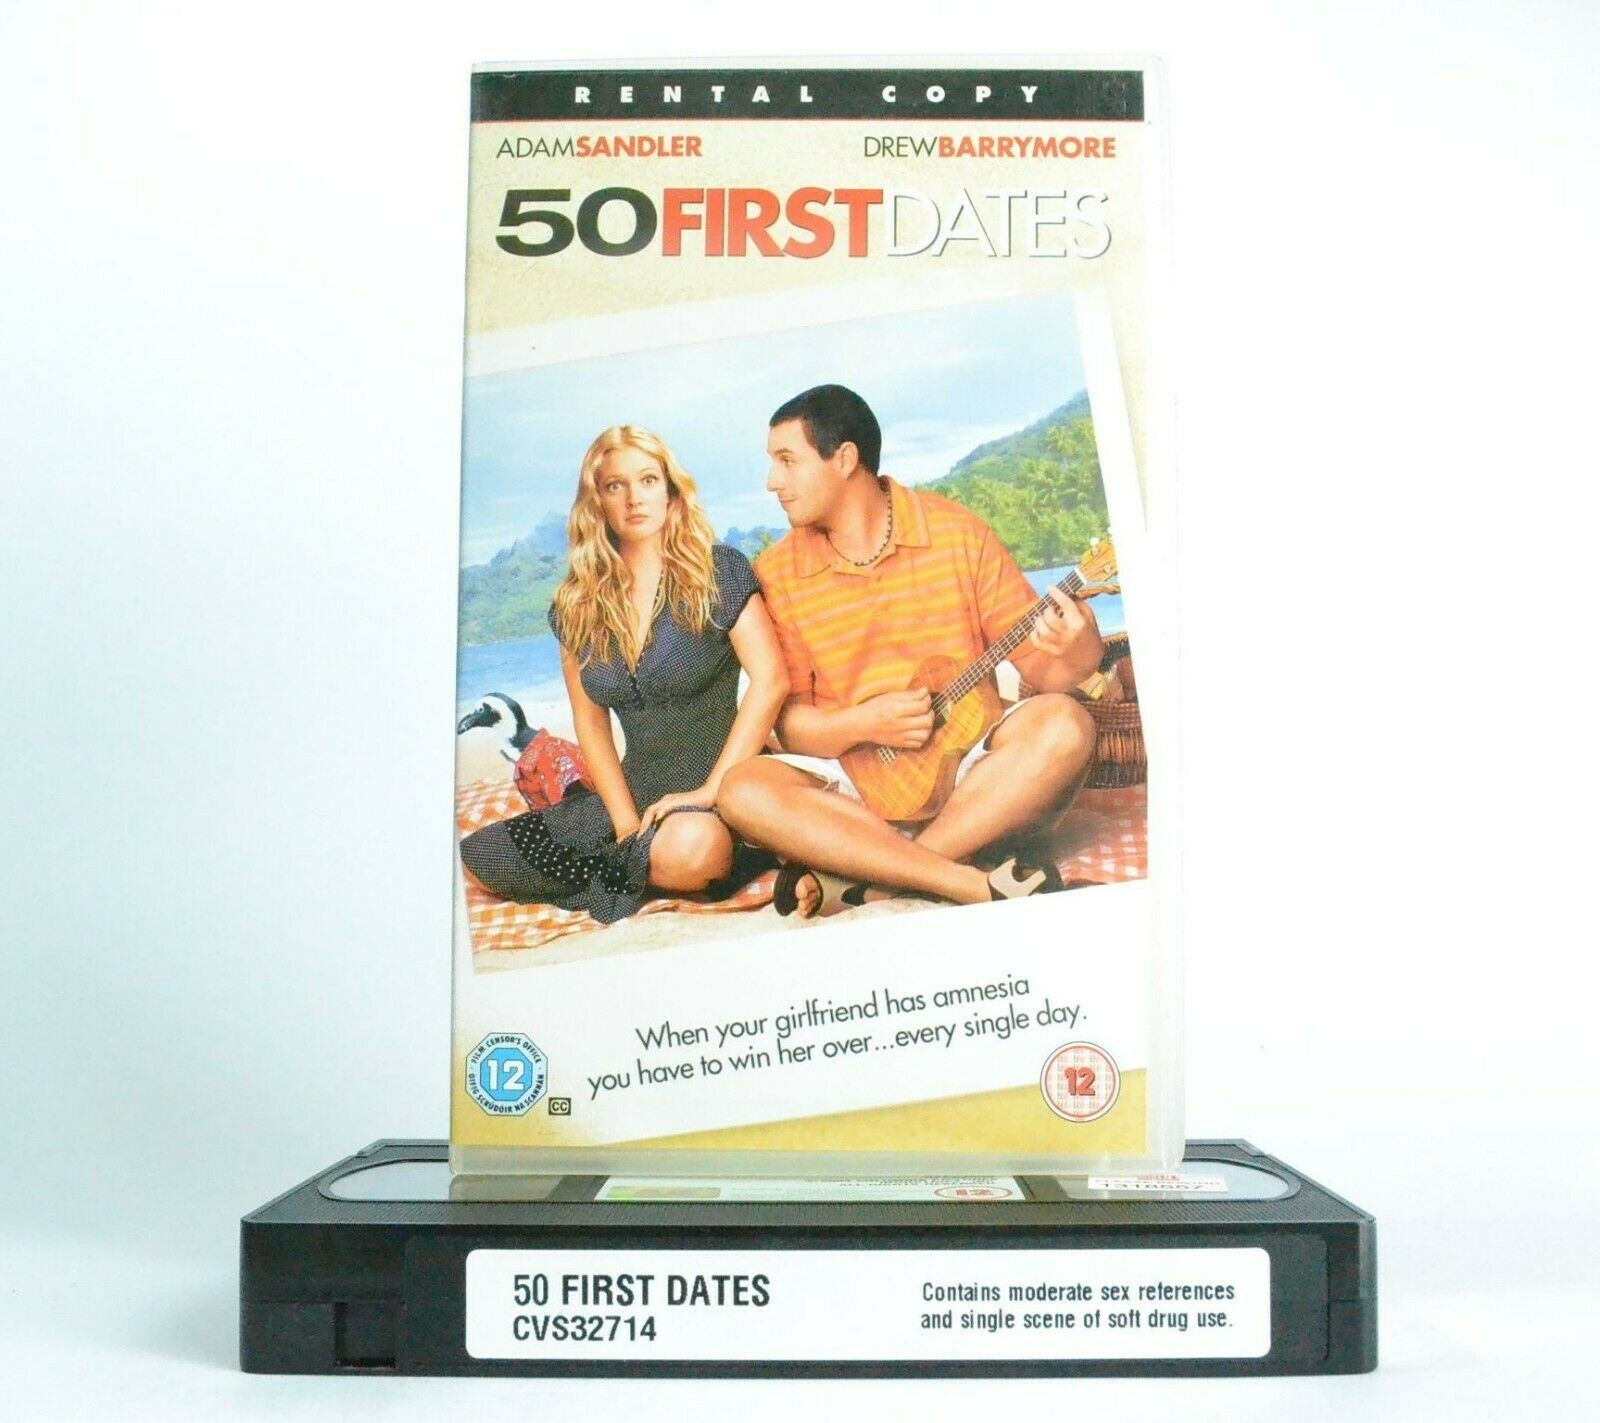 50 First Dates: A.Sandler/D.Barrymore - Romantic Comedy (2004) - Large Box - VHS